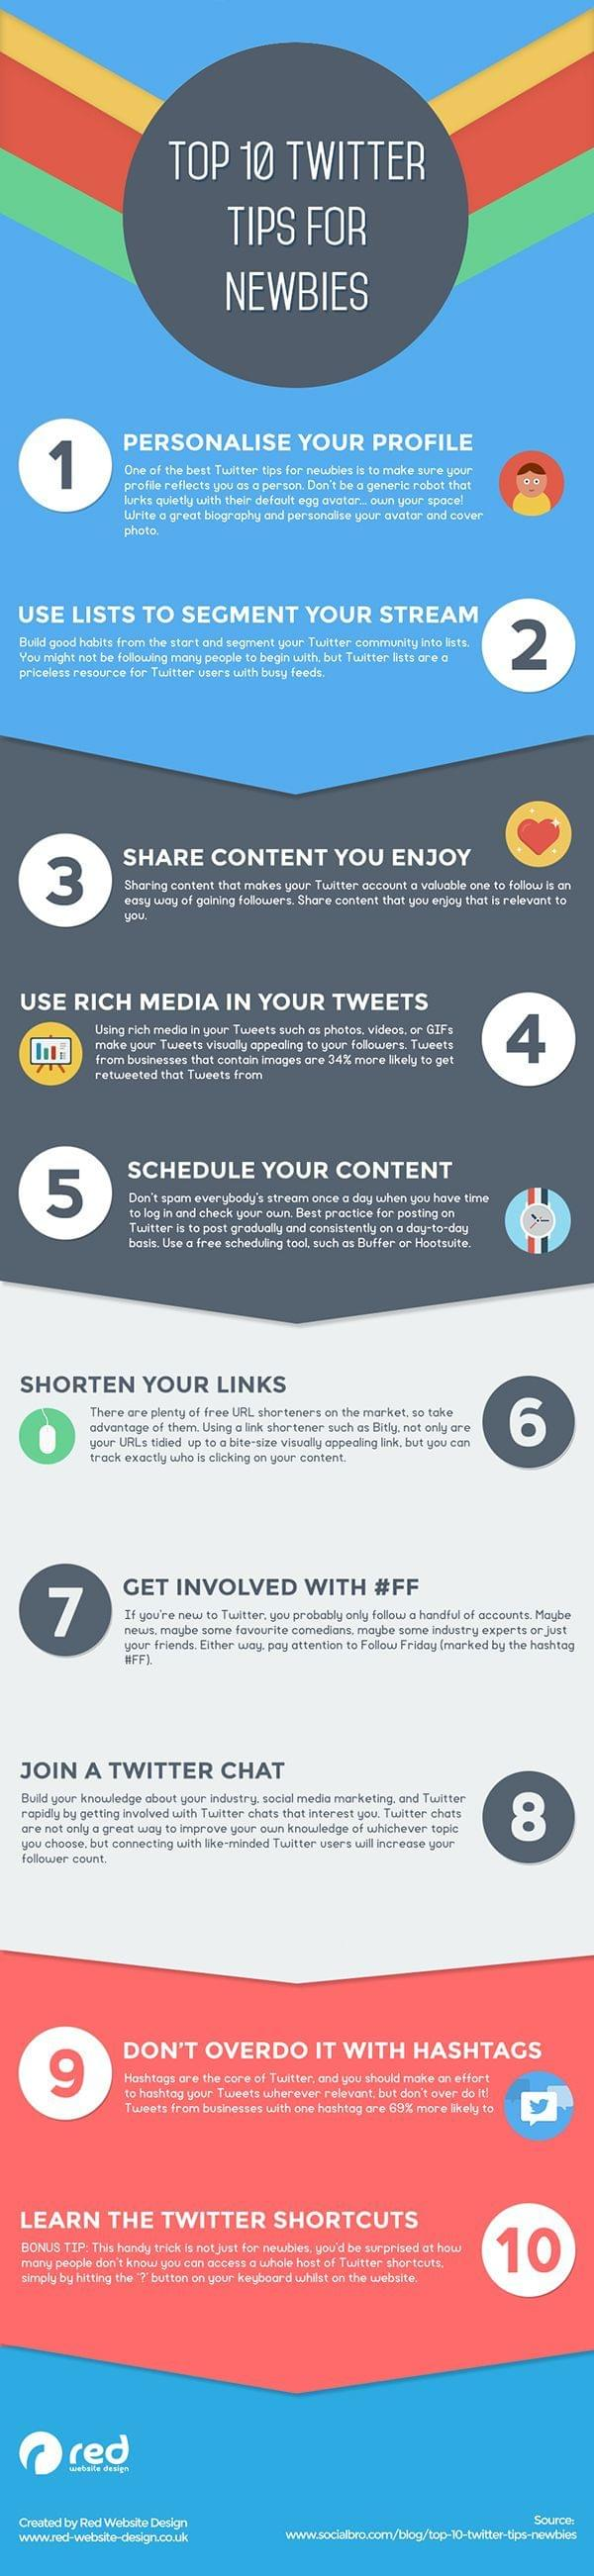 Top 10 Twitter Tips for Newbies Infographic